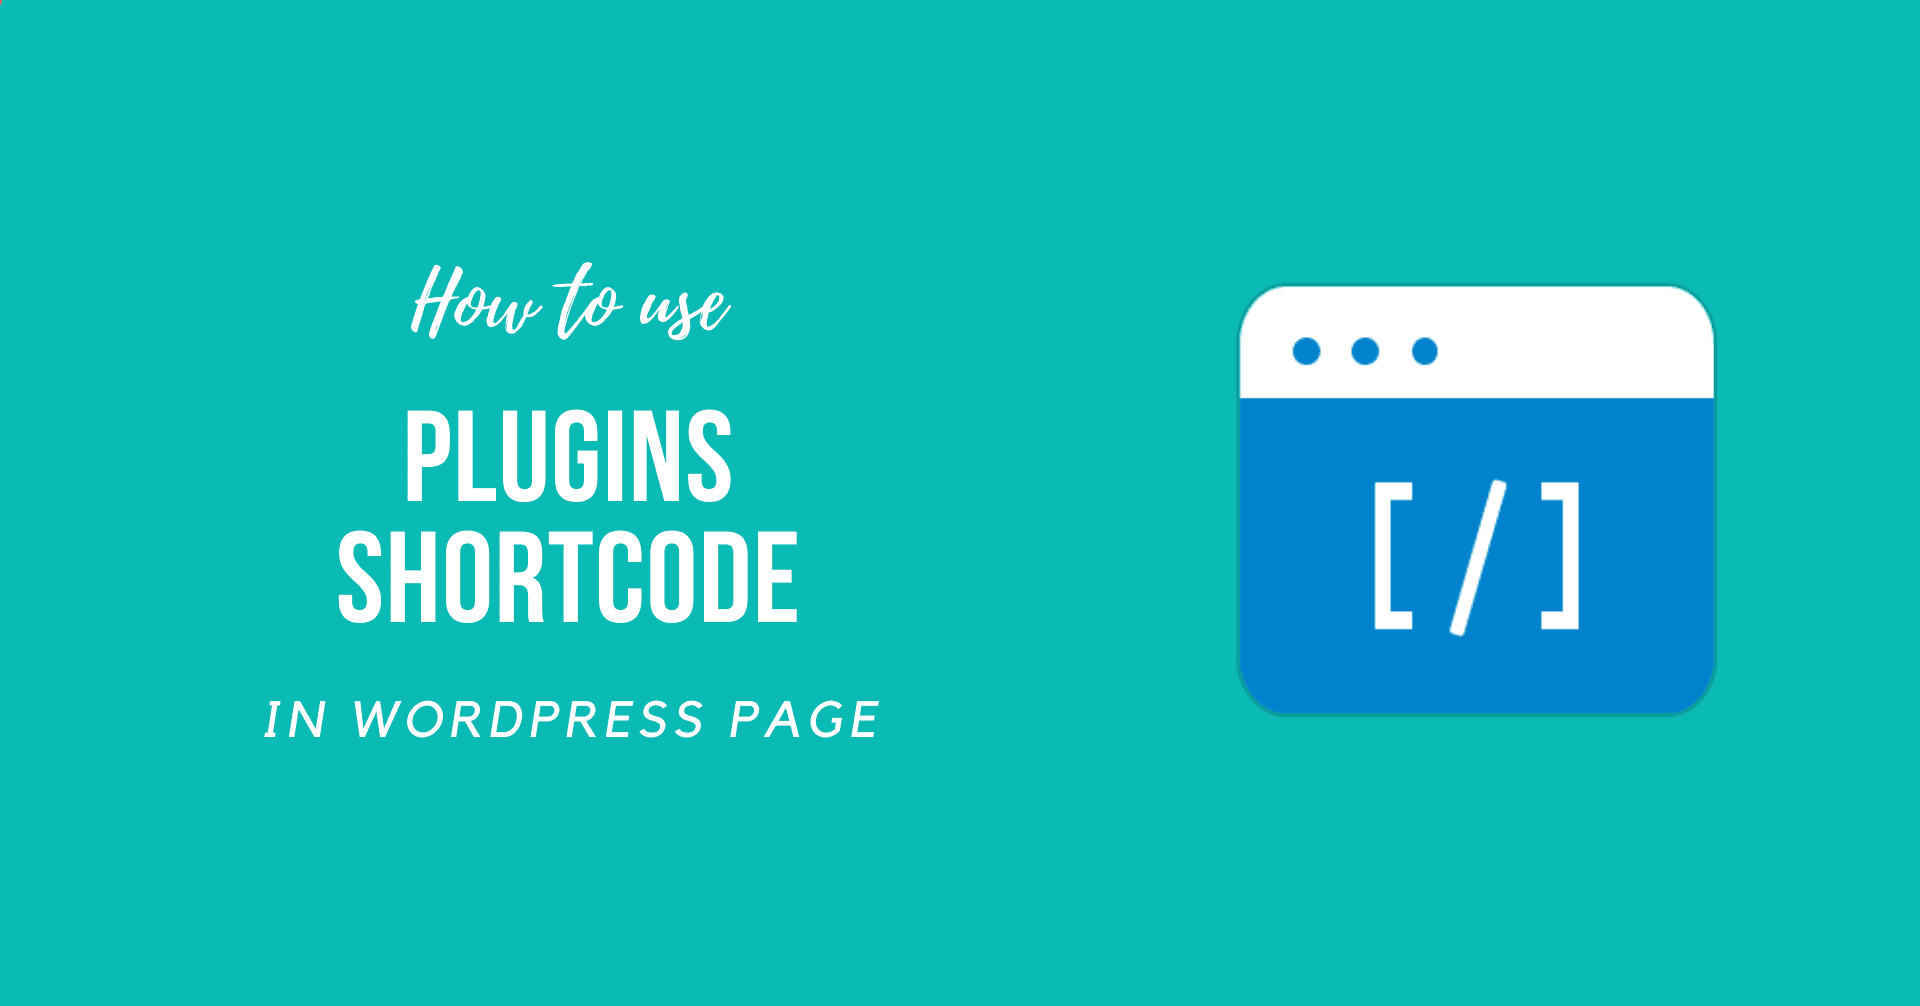 How to use WordPress Plugins Shortcode in a Page